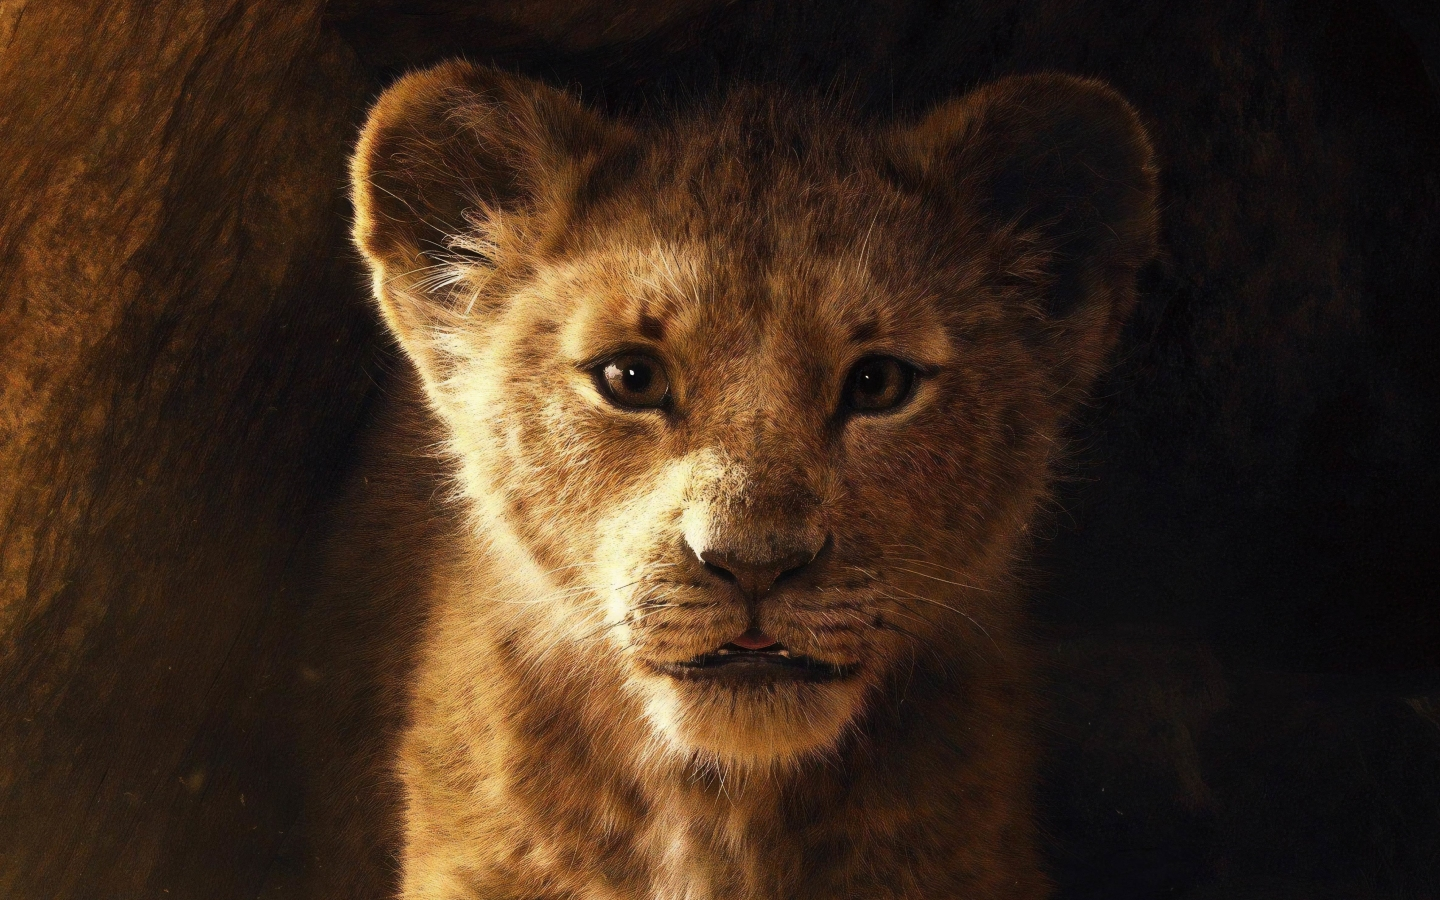 Movie Poster 2019: Download The Lion King 2019 Movie Poster 1600x1200